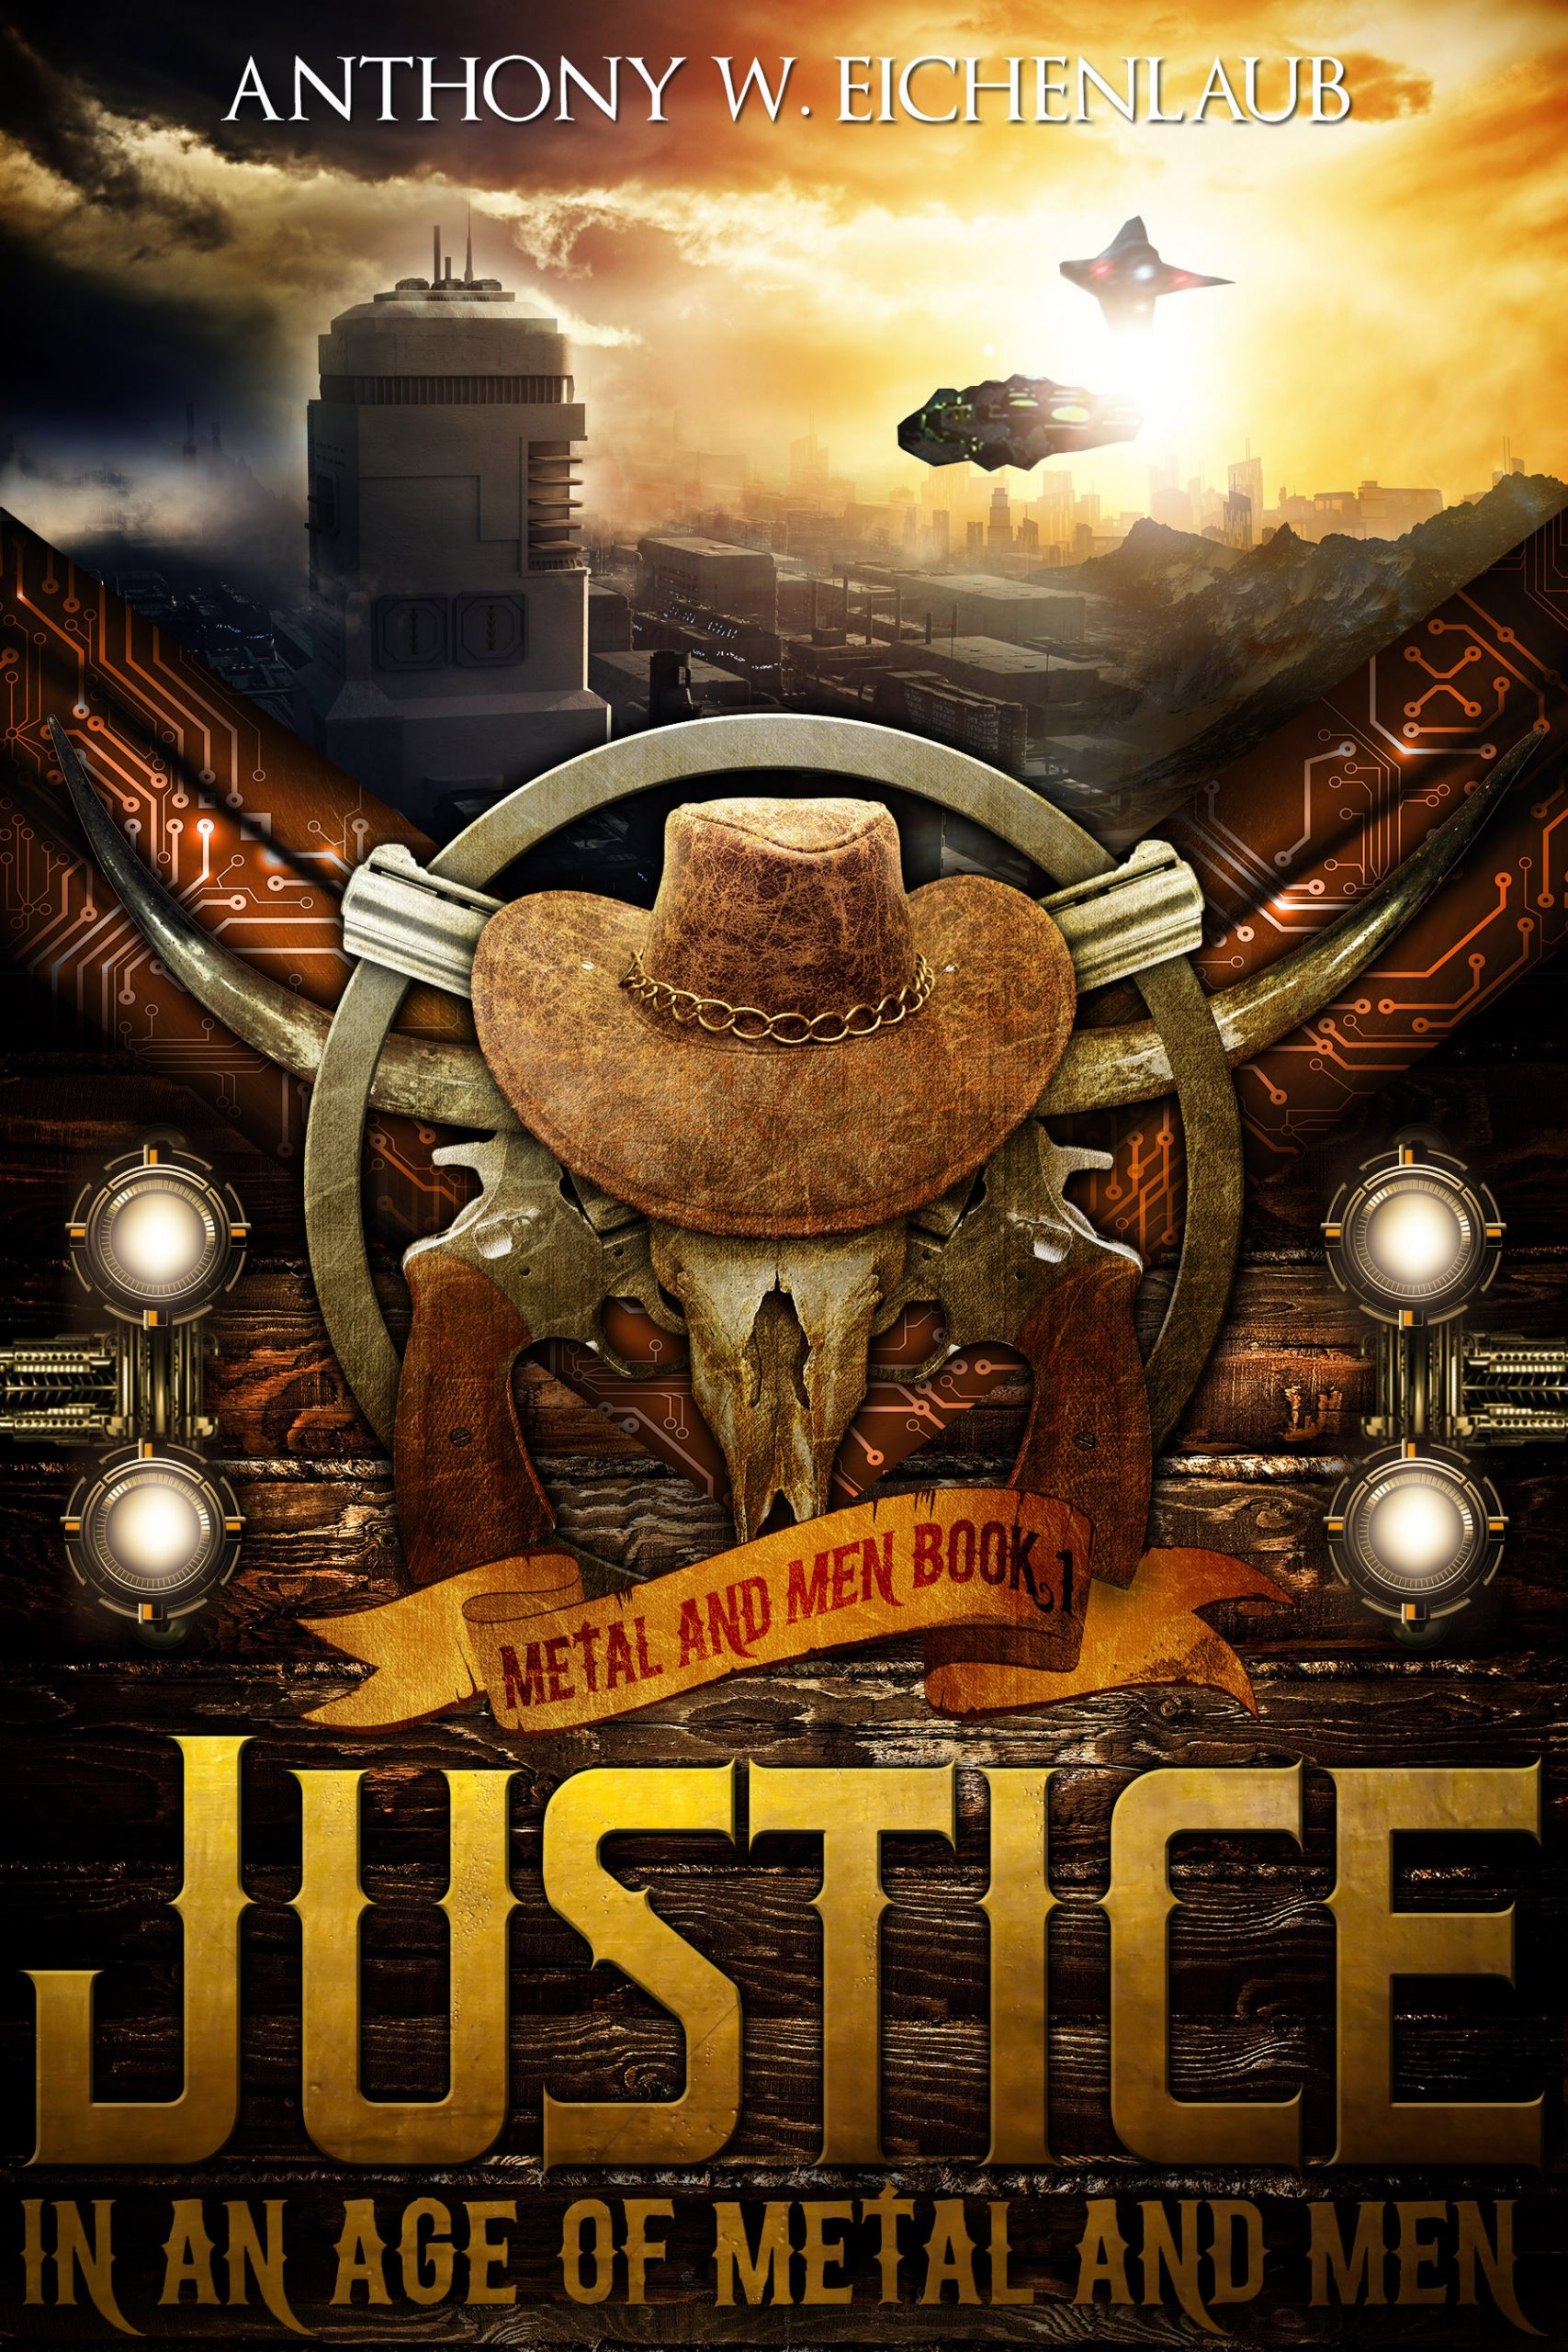 Skull in cowboy hat, guns, and scifi background